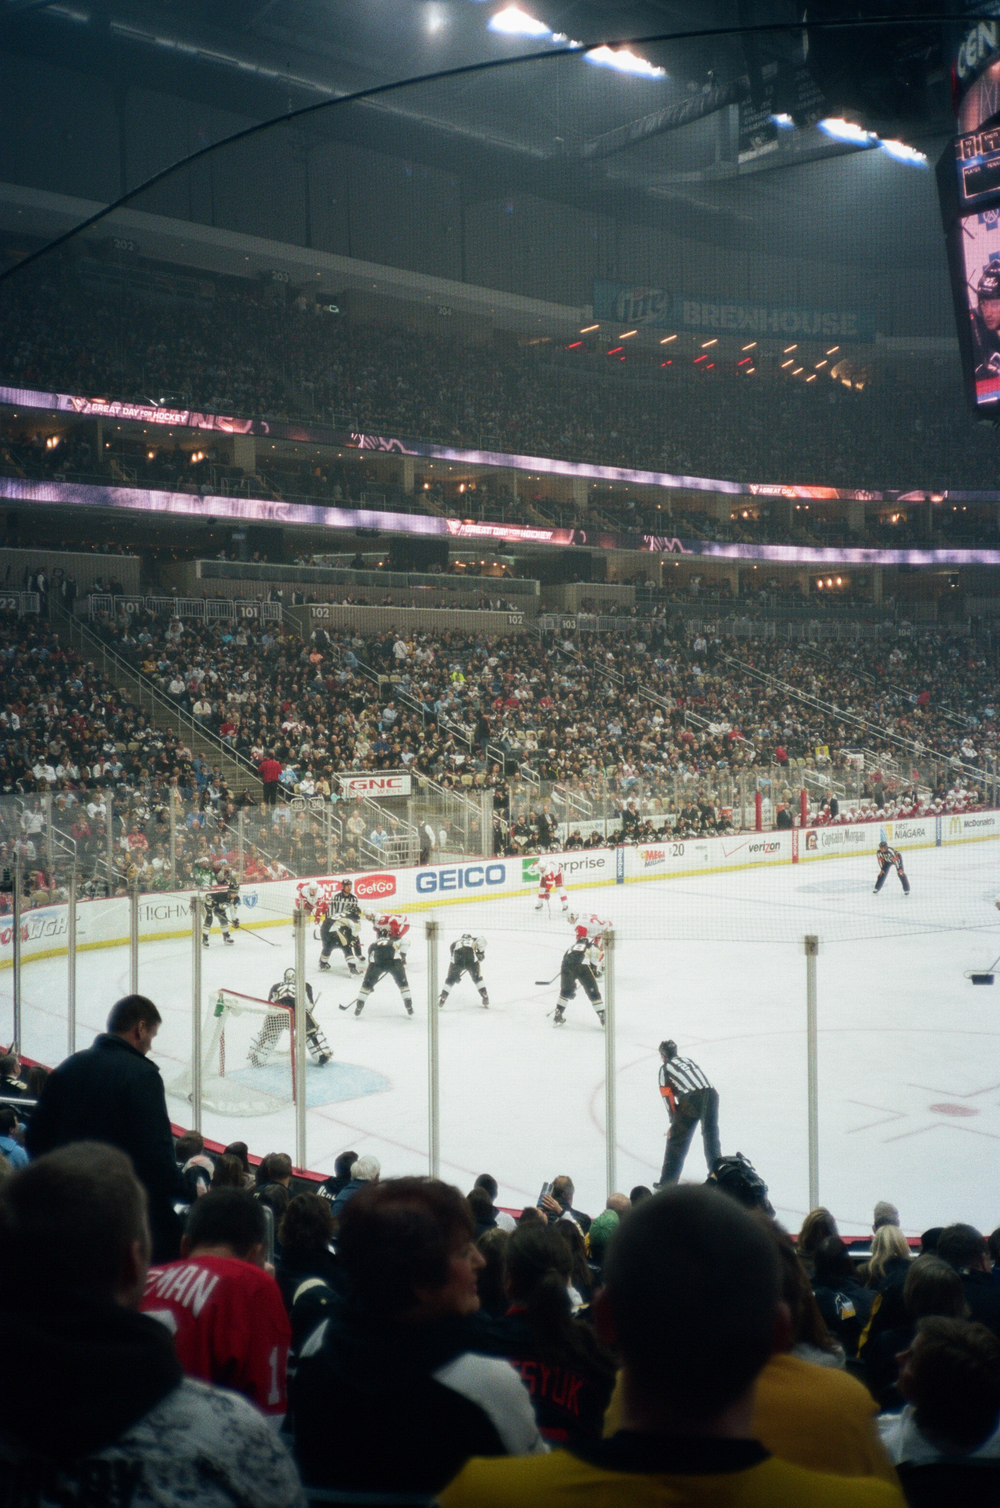 Hockey-Night-In-Pittsburgh-Film-Photography-Karlsson-032.jpg